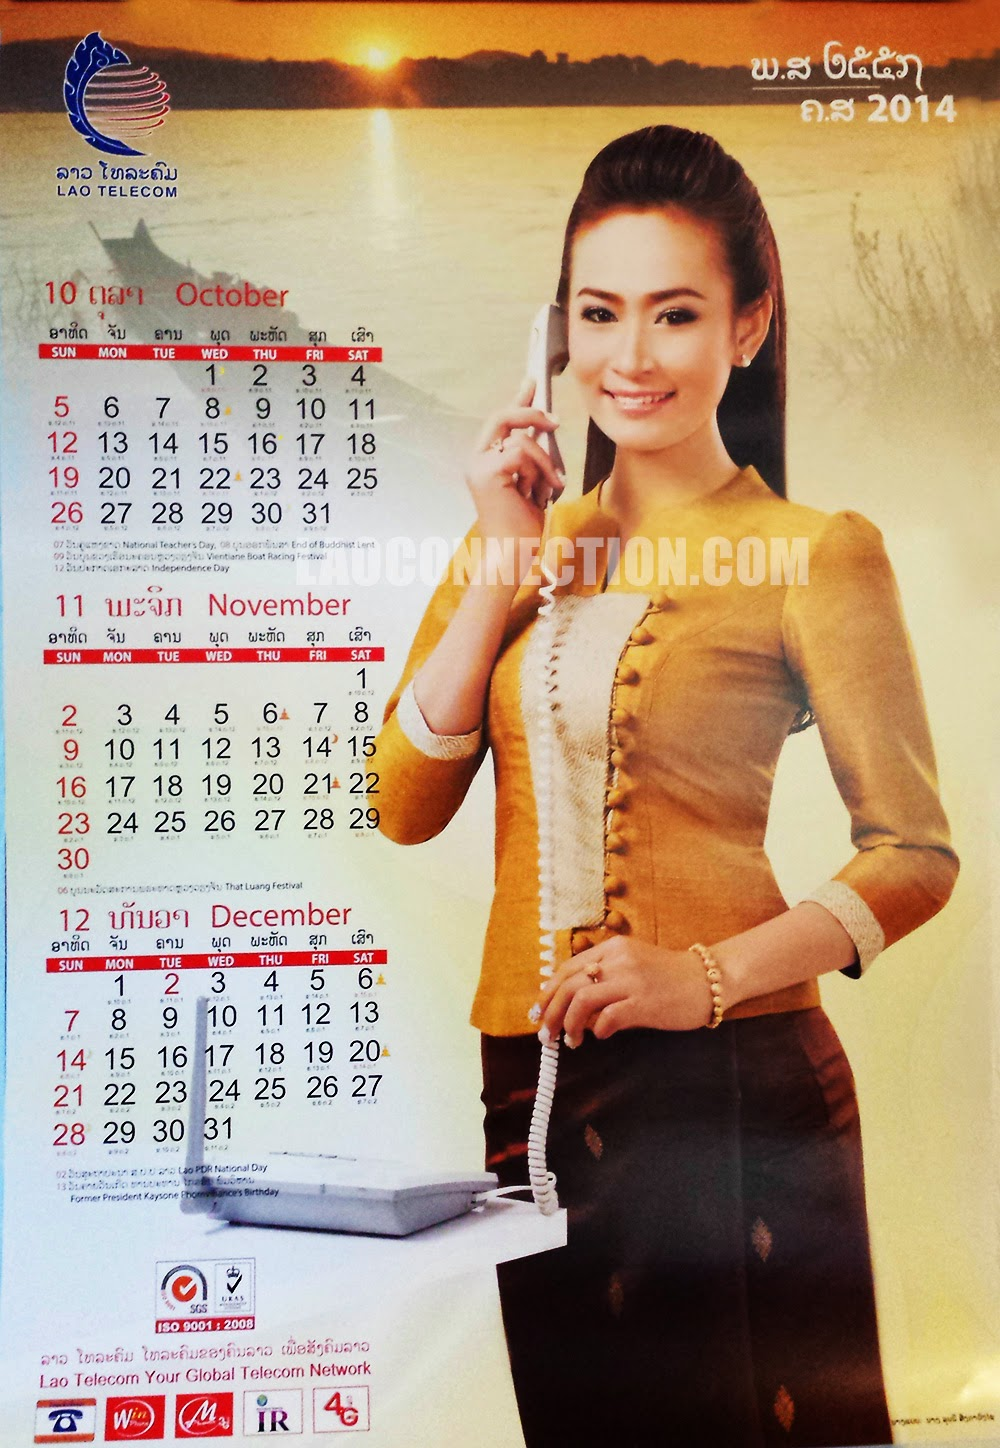 Lao Telecom Calendar 2014 - Miss October/November/December